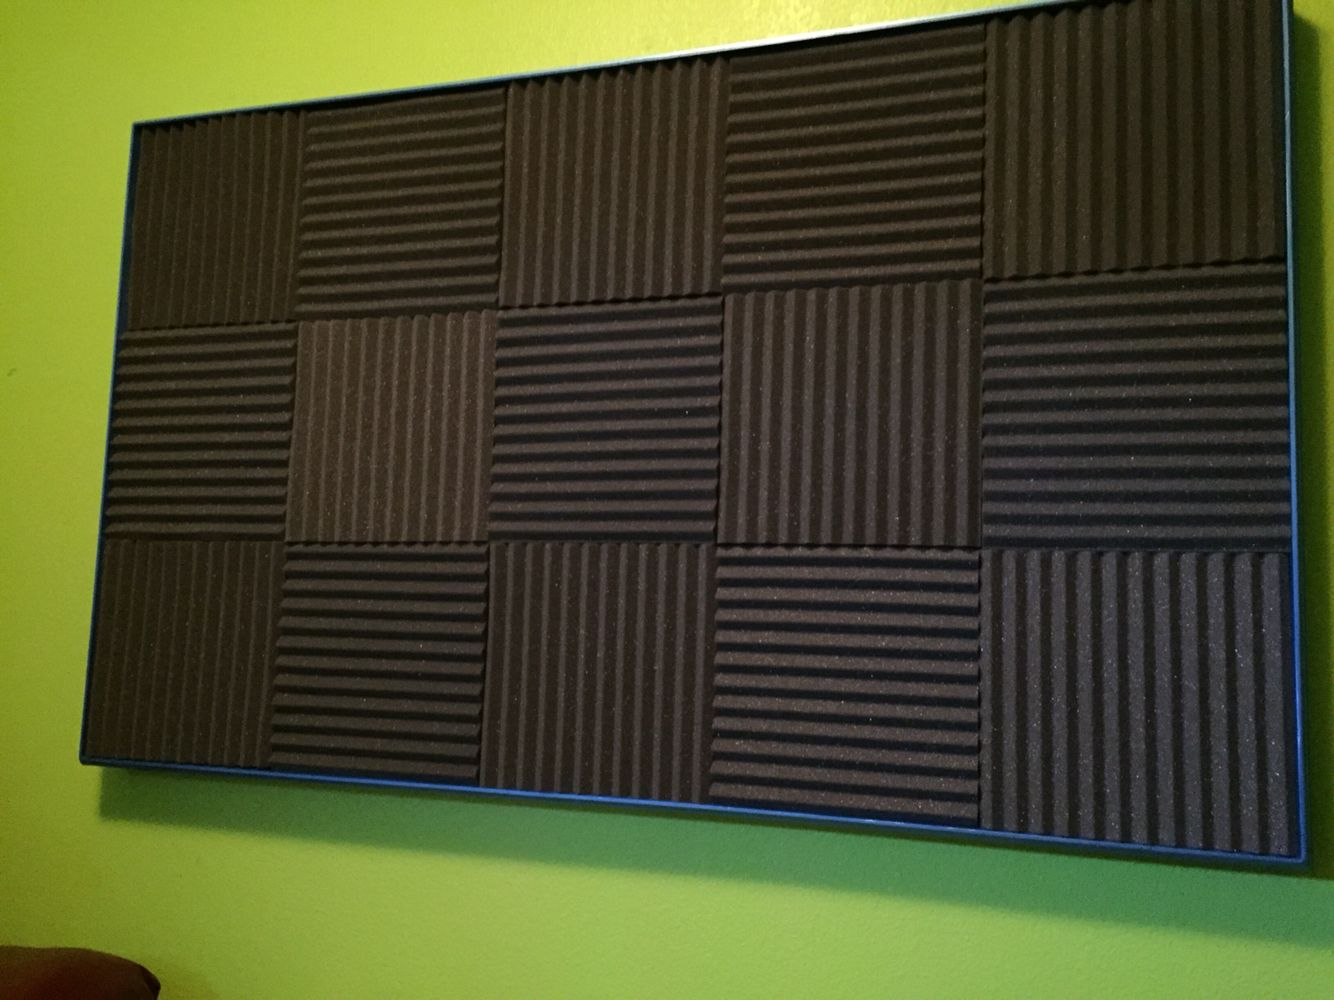 3 Thick Charcoal Wedge Foam 12x12 Metallic Blue Wood Frame Super Sound Absorbent I Used 1 8 Foam Board Adds More Sound Panel Acoustic Panels Blue Wood